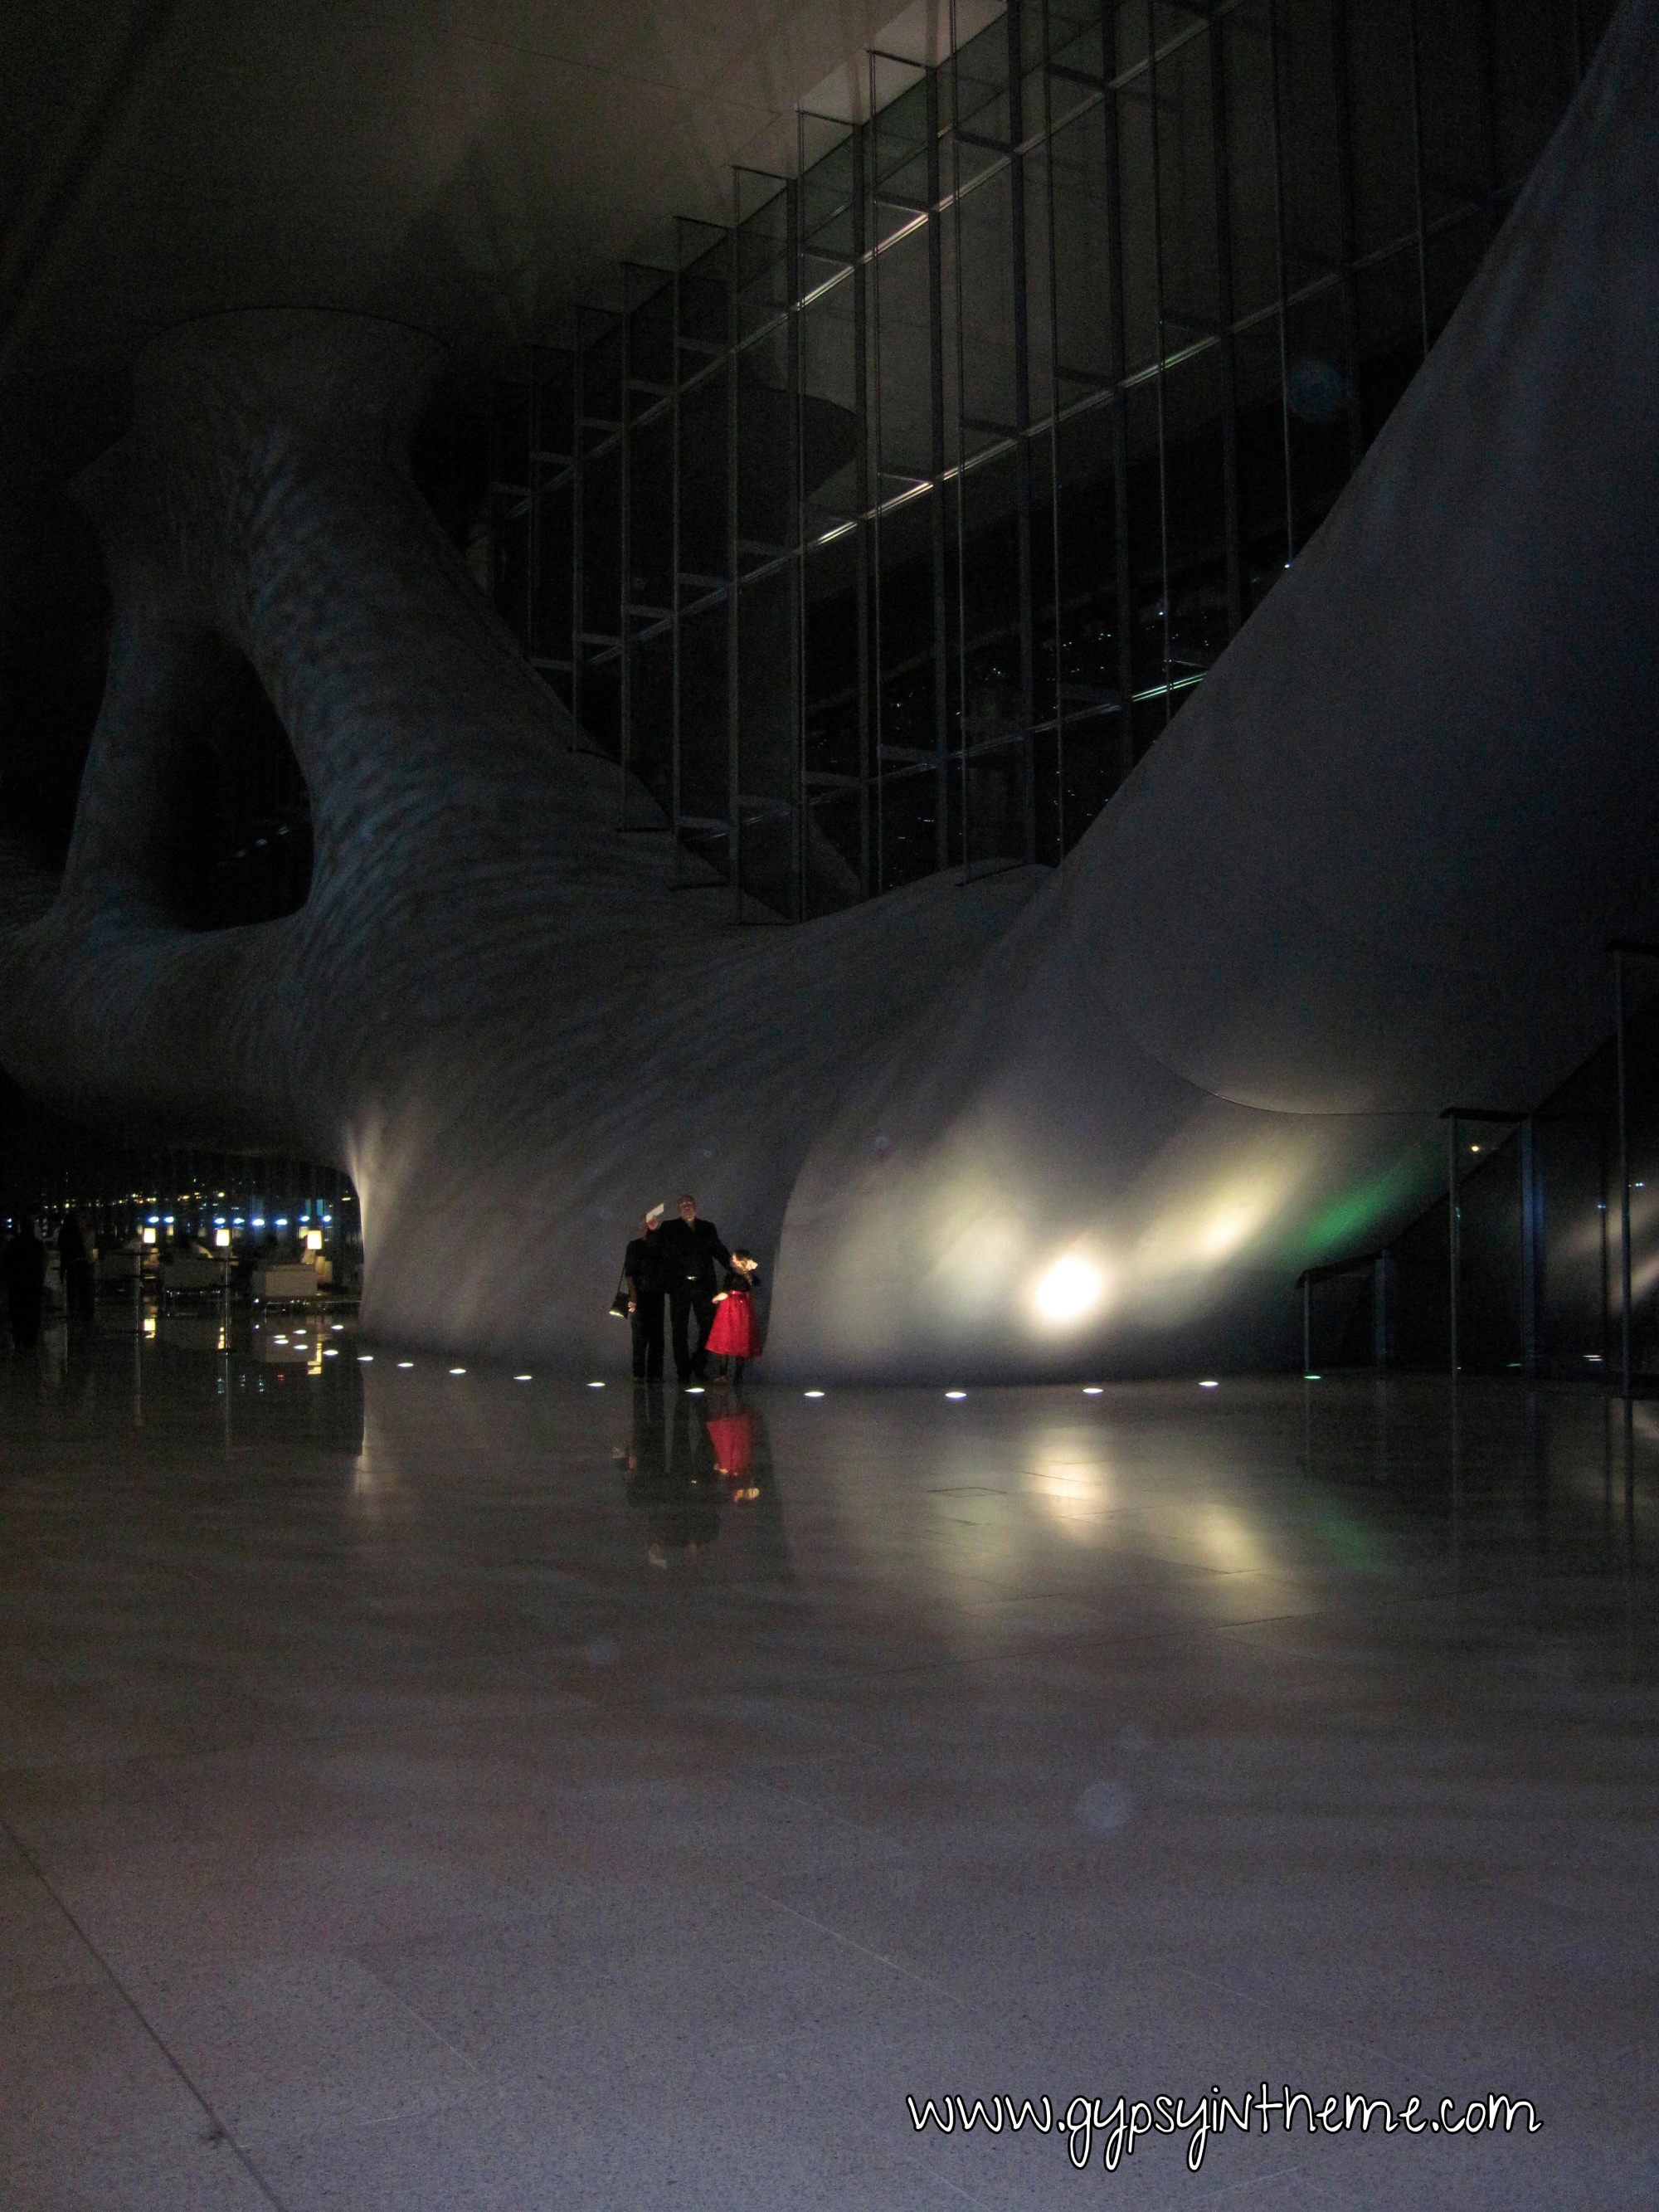 Inside the Qatar National Exhibition Center at night.